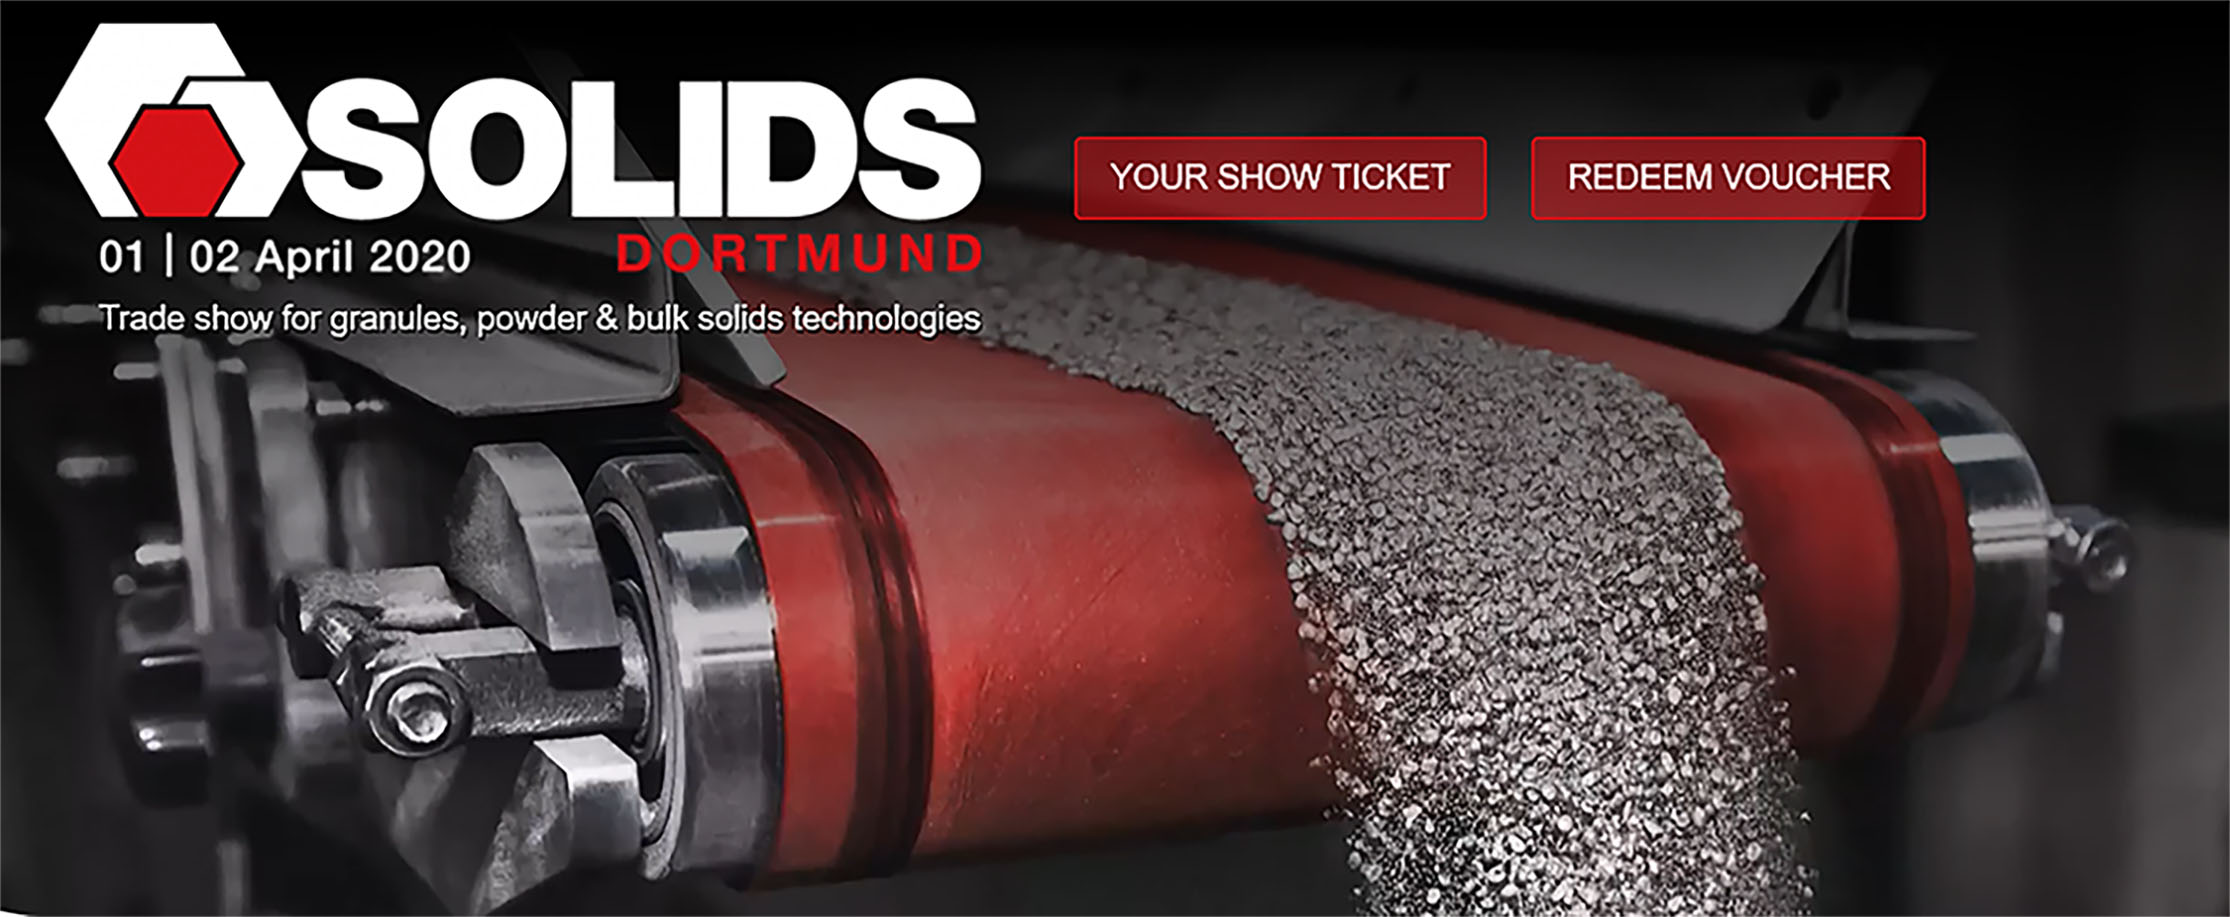 CinchSeal attends Solids trade show in Dortmund, Germany on April 1-2, 2020